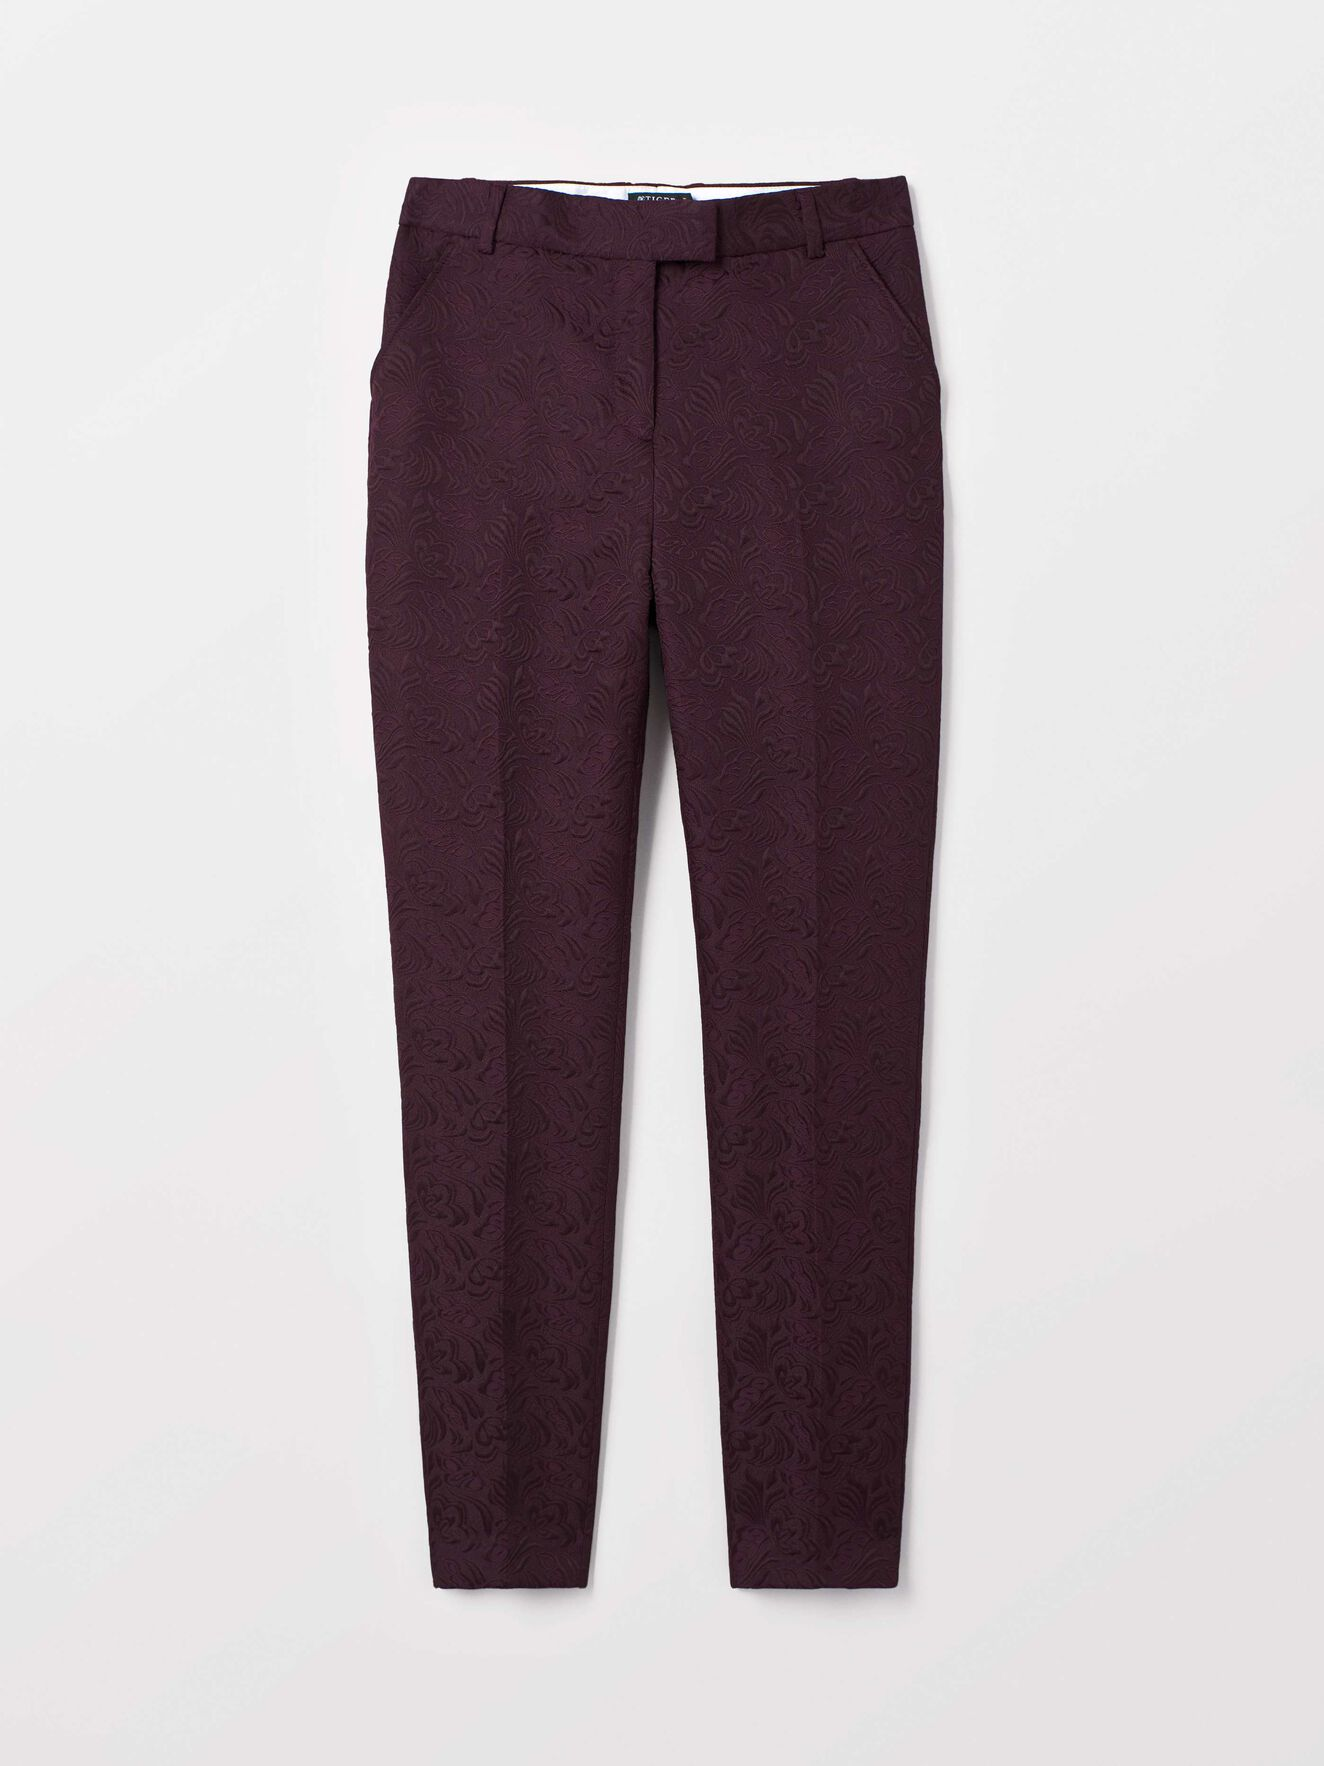 Loanella 2 Trousers  in Hot Rust from Tiger of Sweden